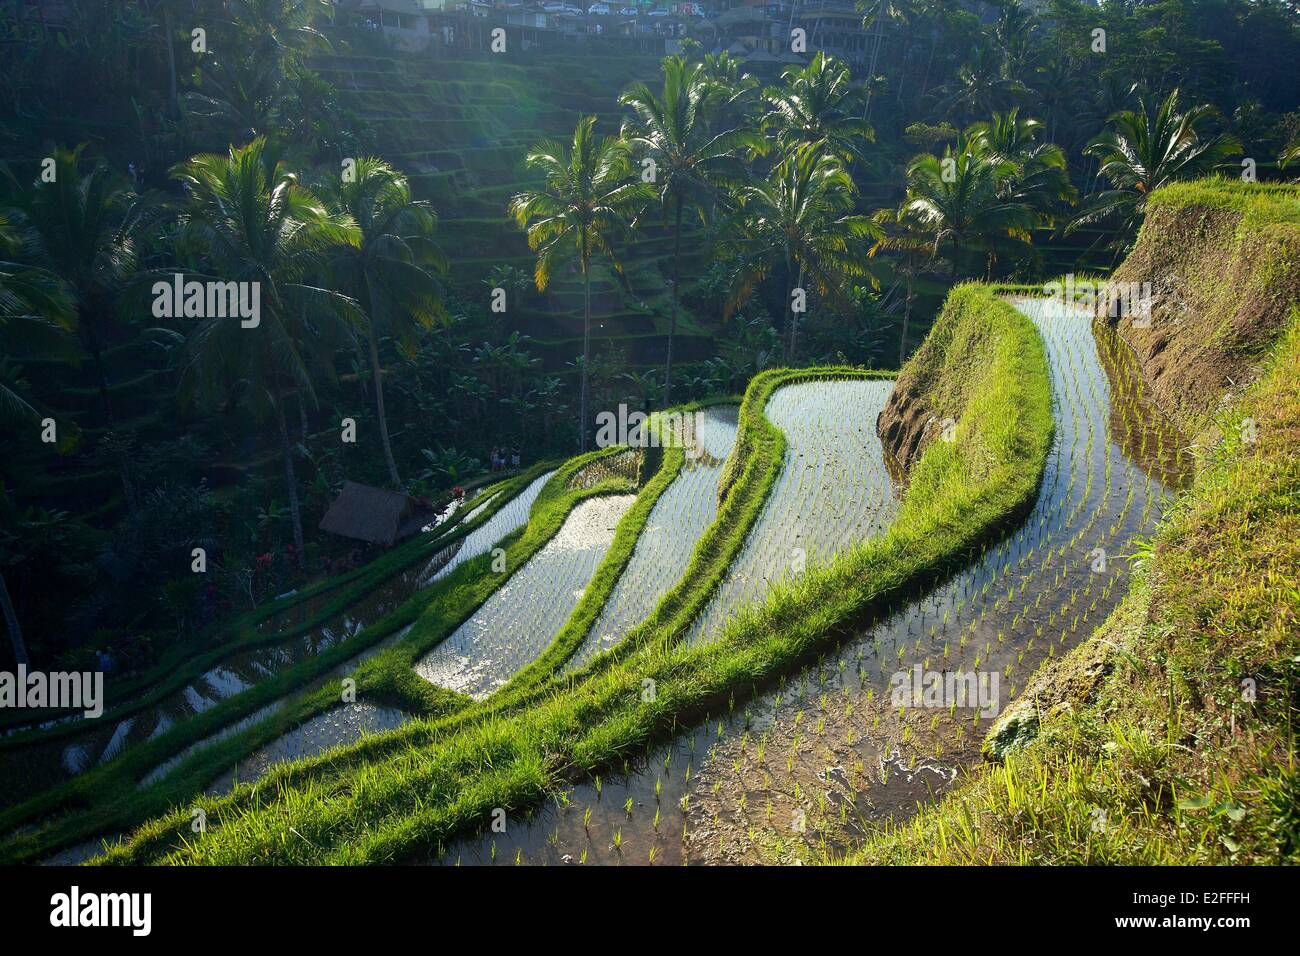 Indonesia, Bali, near Ubud, Tegalalang, rice field Stock Photo